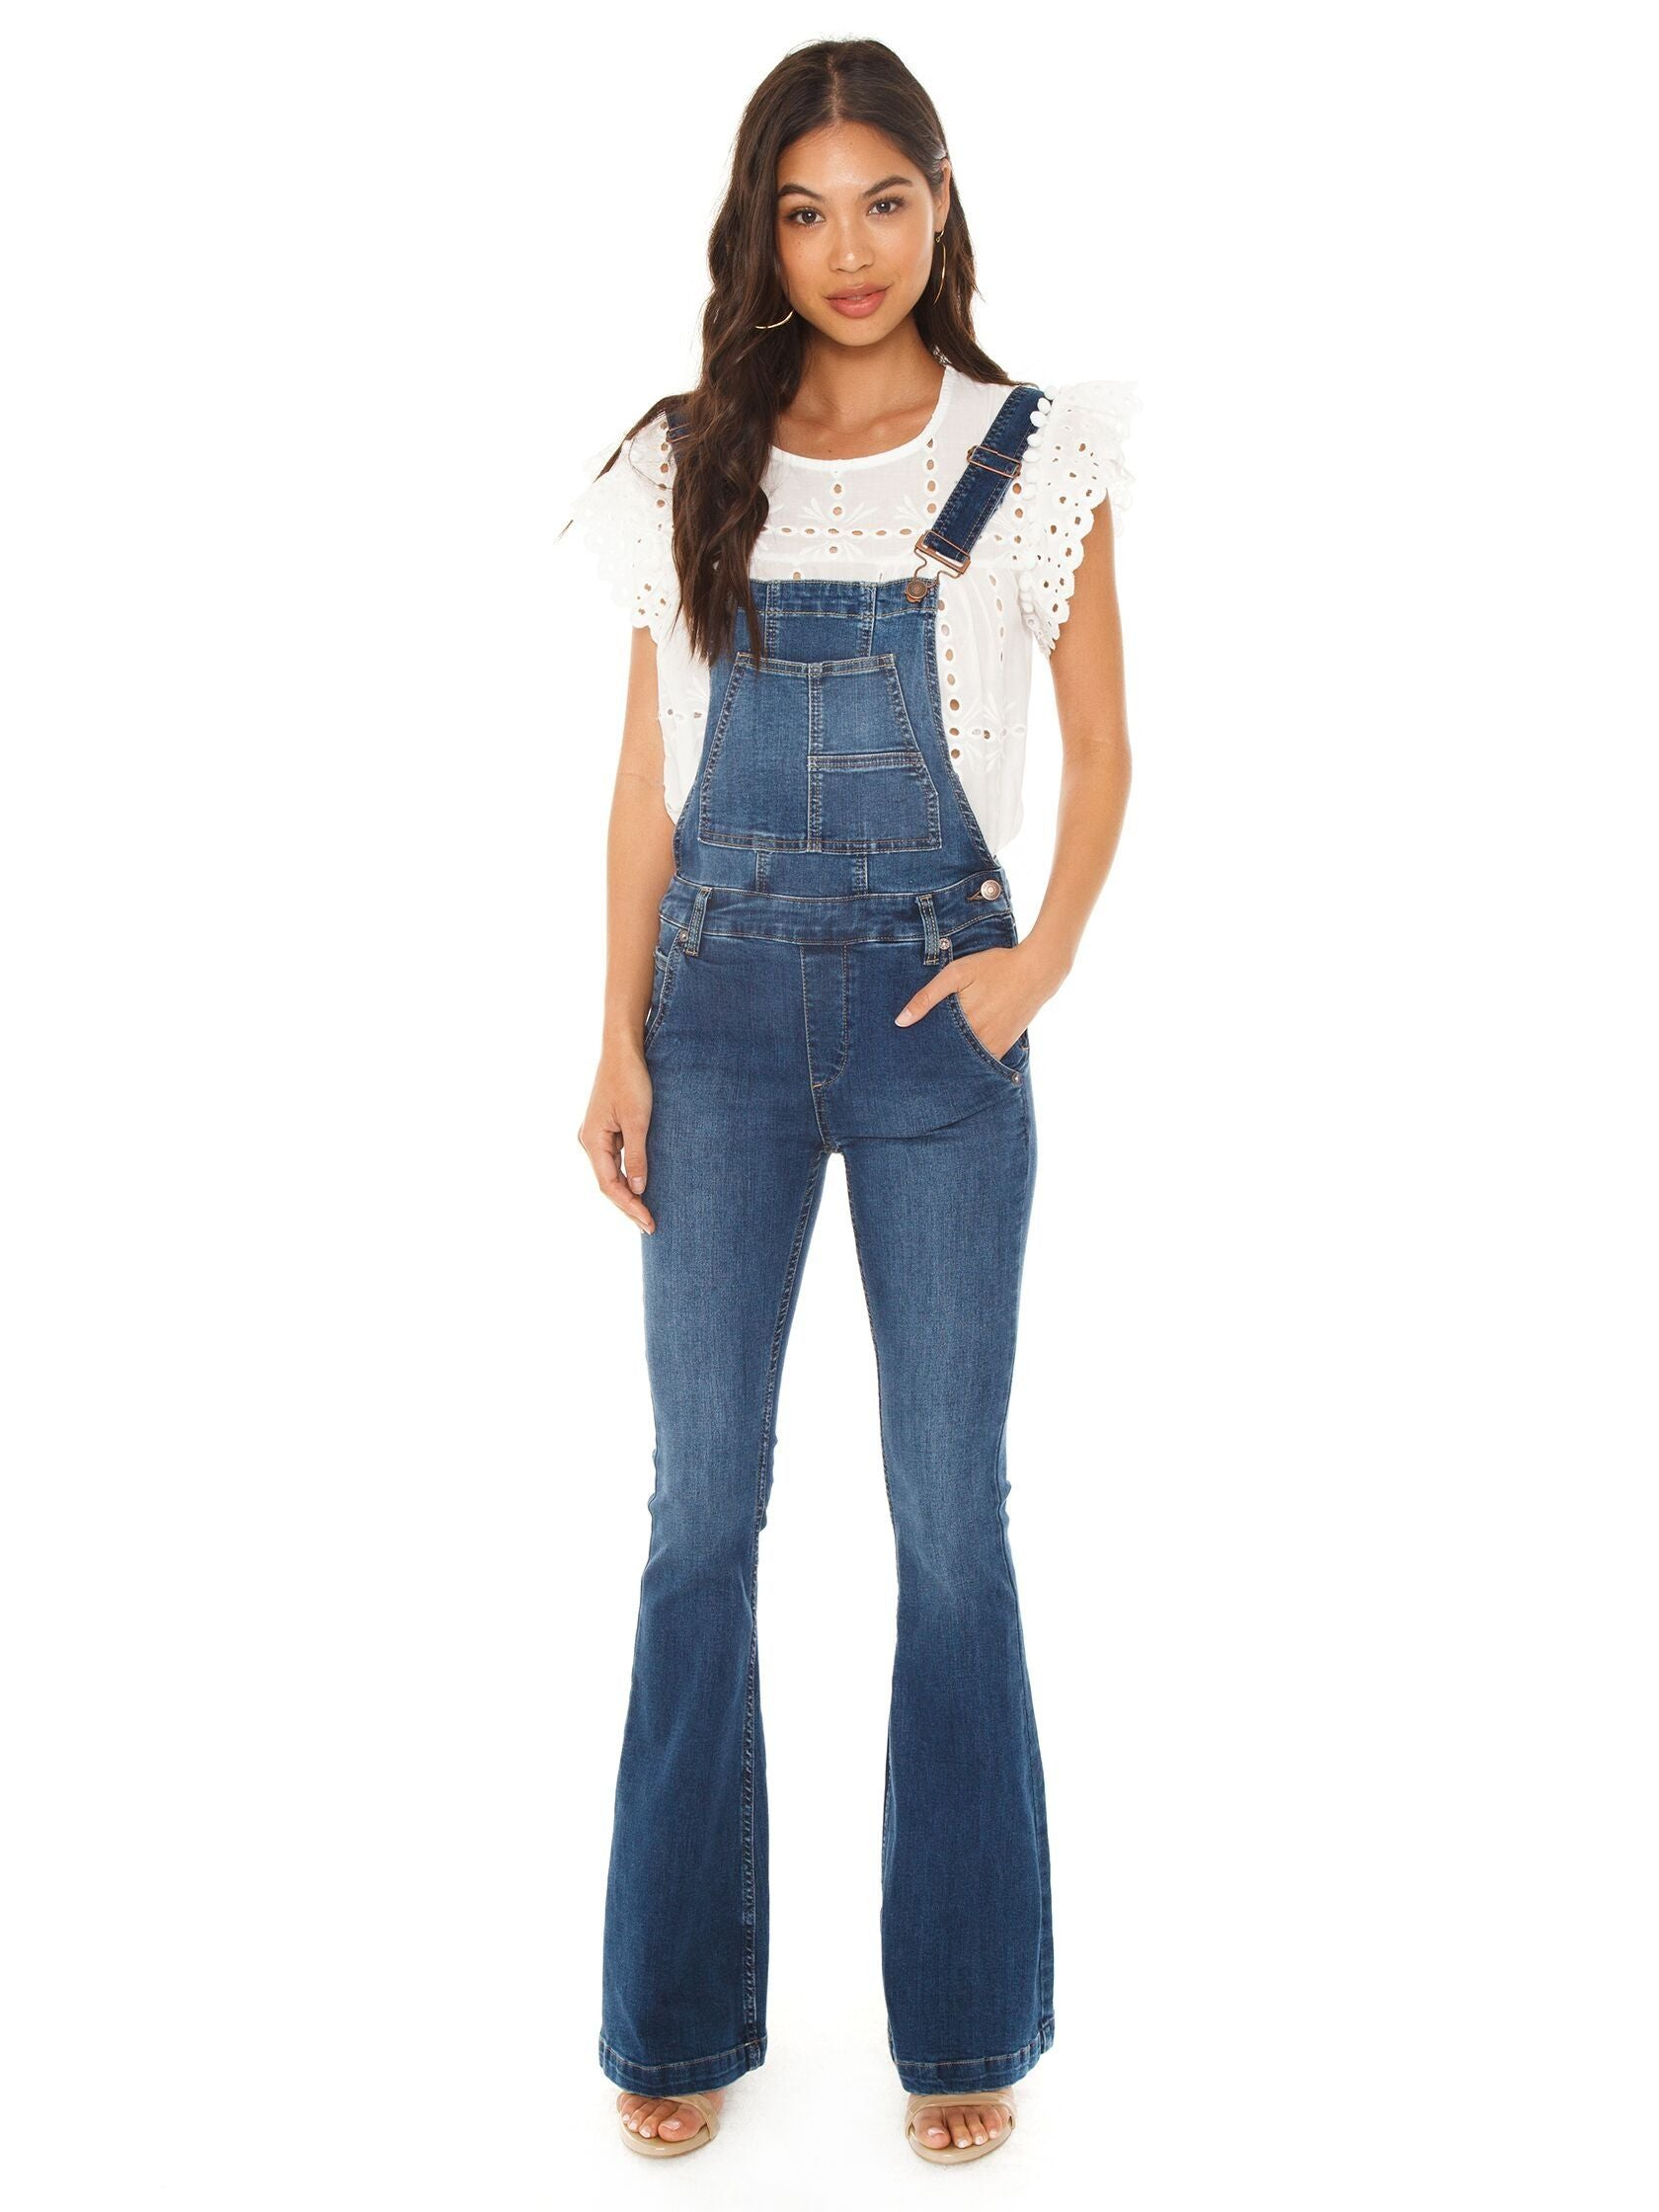 Girl outfit in a overalls rental from Free People called Carly Flare Overall